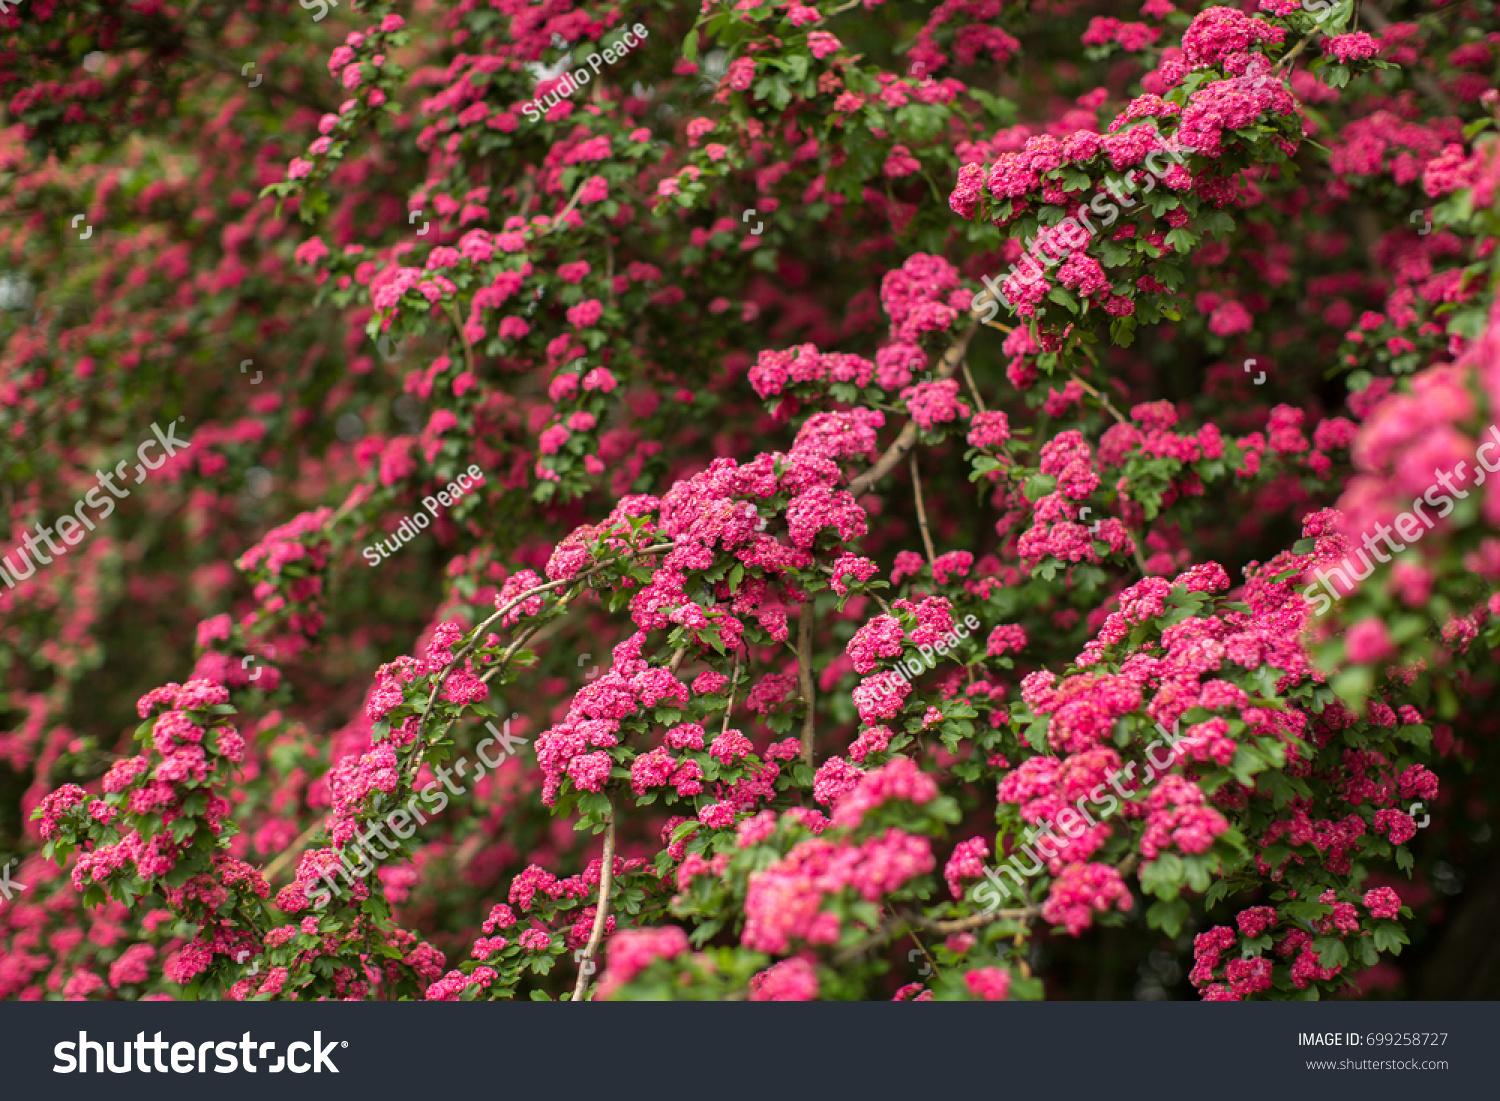 Pink Flowers On Tree Branch Stock Photo Edit Now 699258727